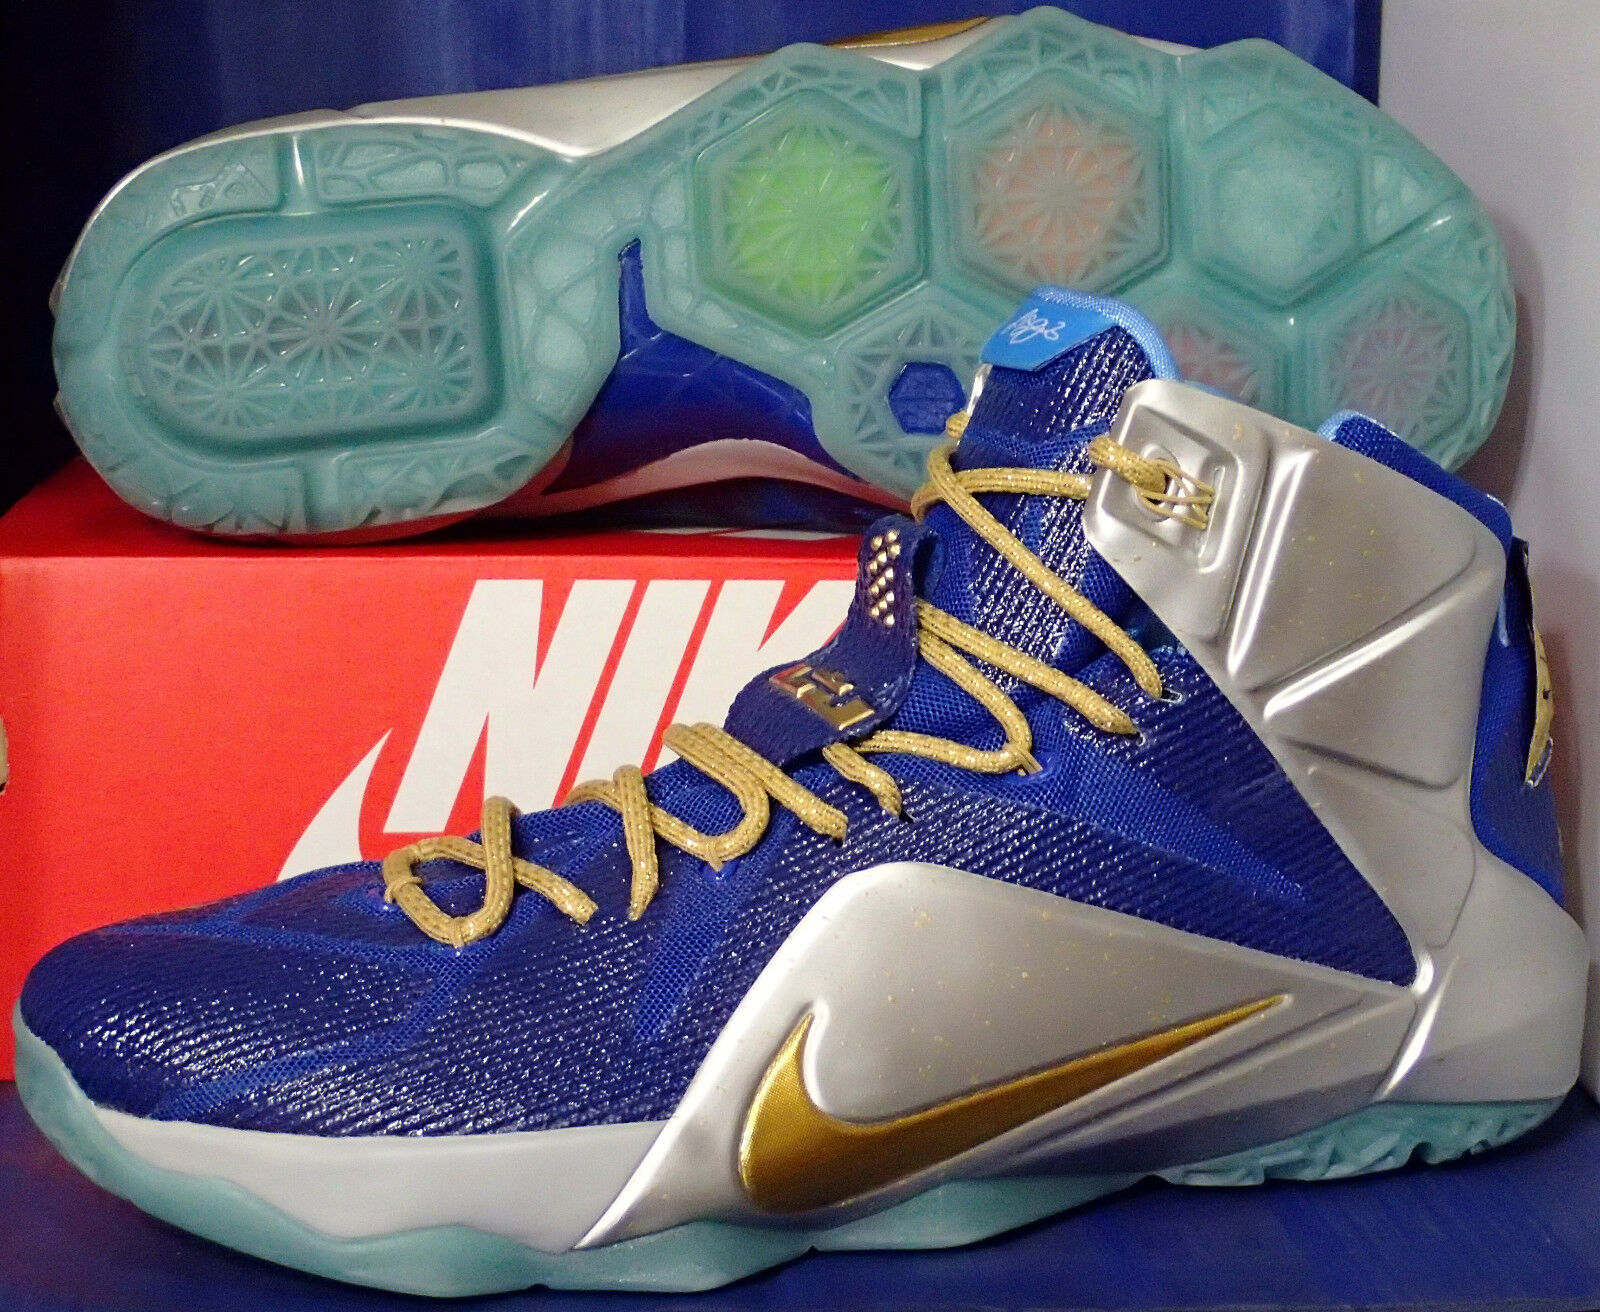 nike lebron xii or 12 id bleu argent or xii sz 14 (728709-982) 7715f5